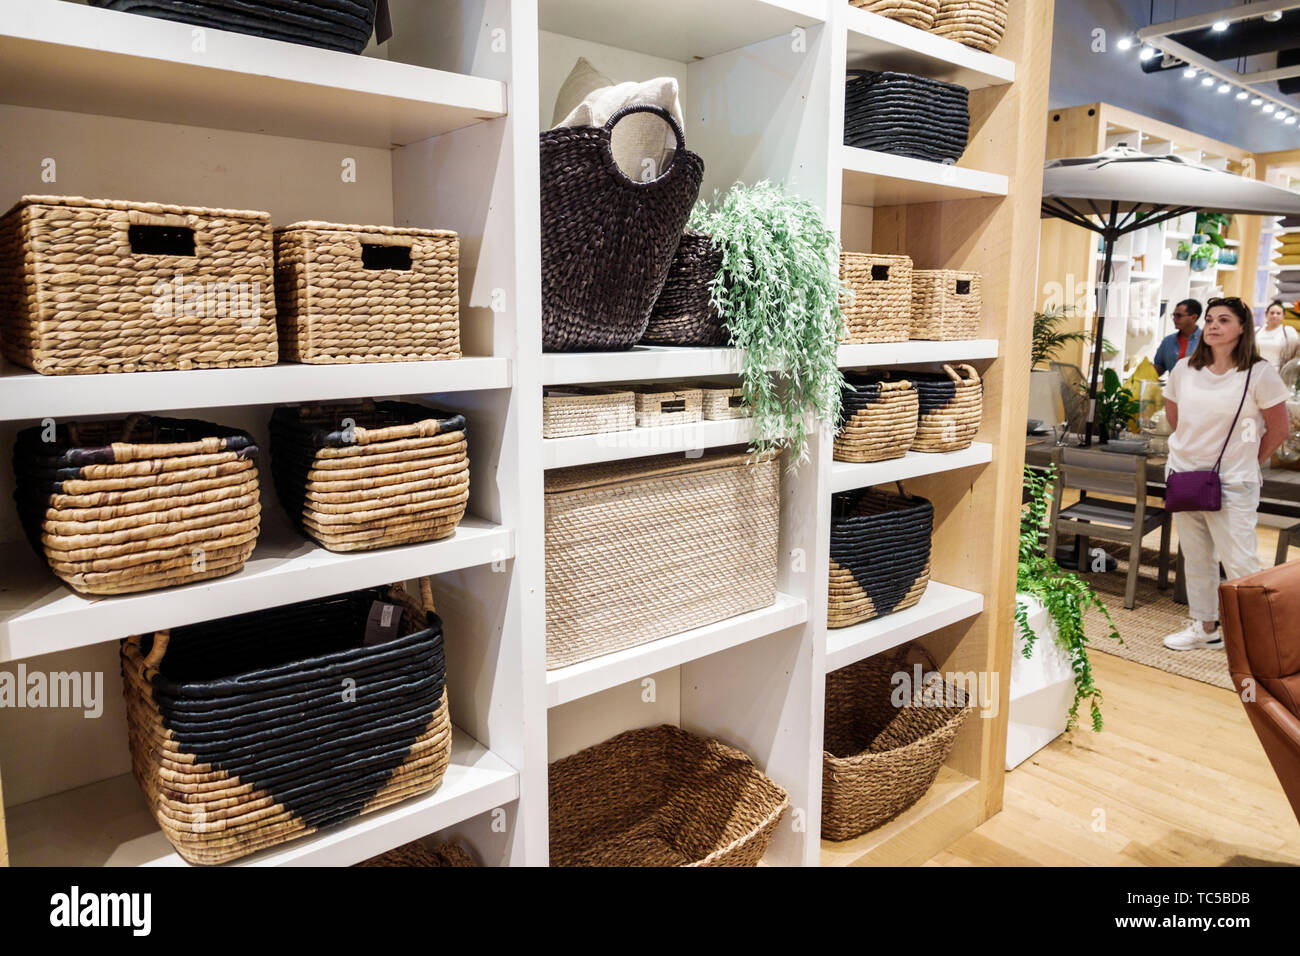 Miami Florida Midtown The Shops at Midtown Miami shopping West Elm home retailer store business inside display sale baskets home decor Stock Photo